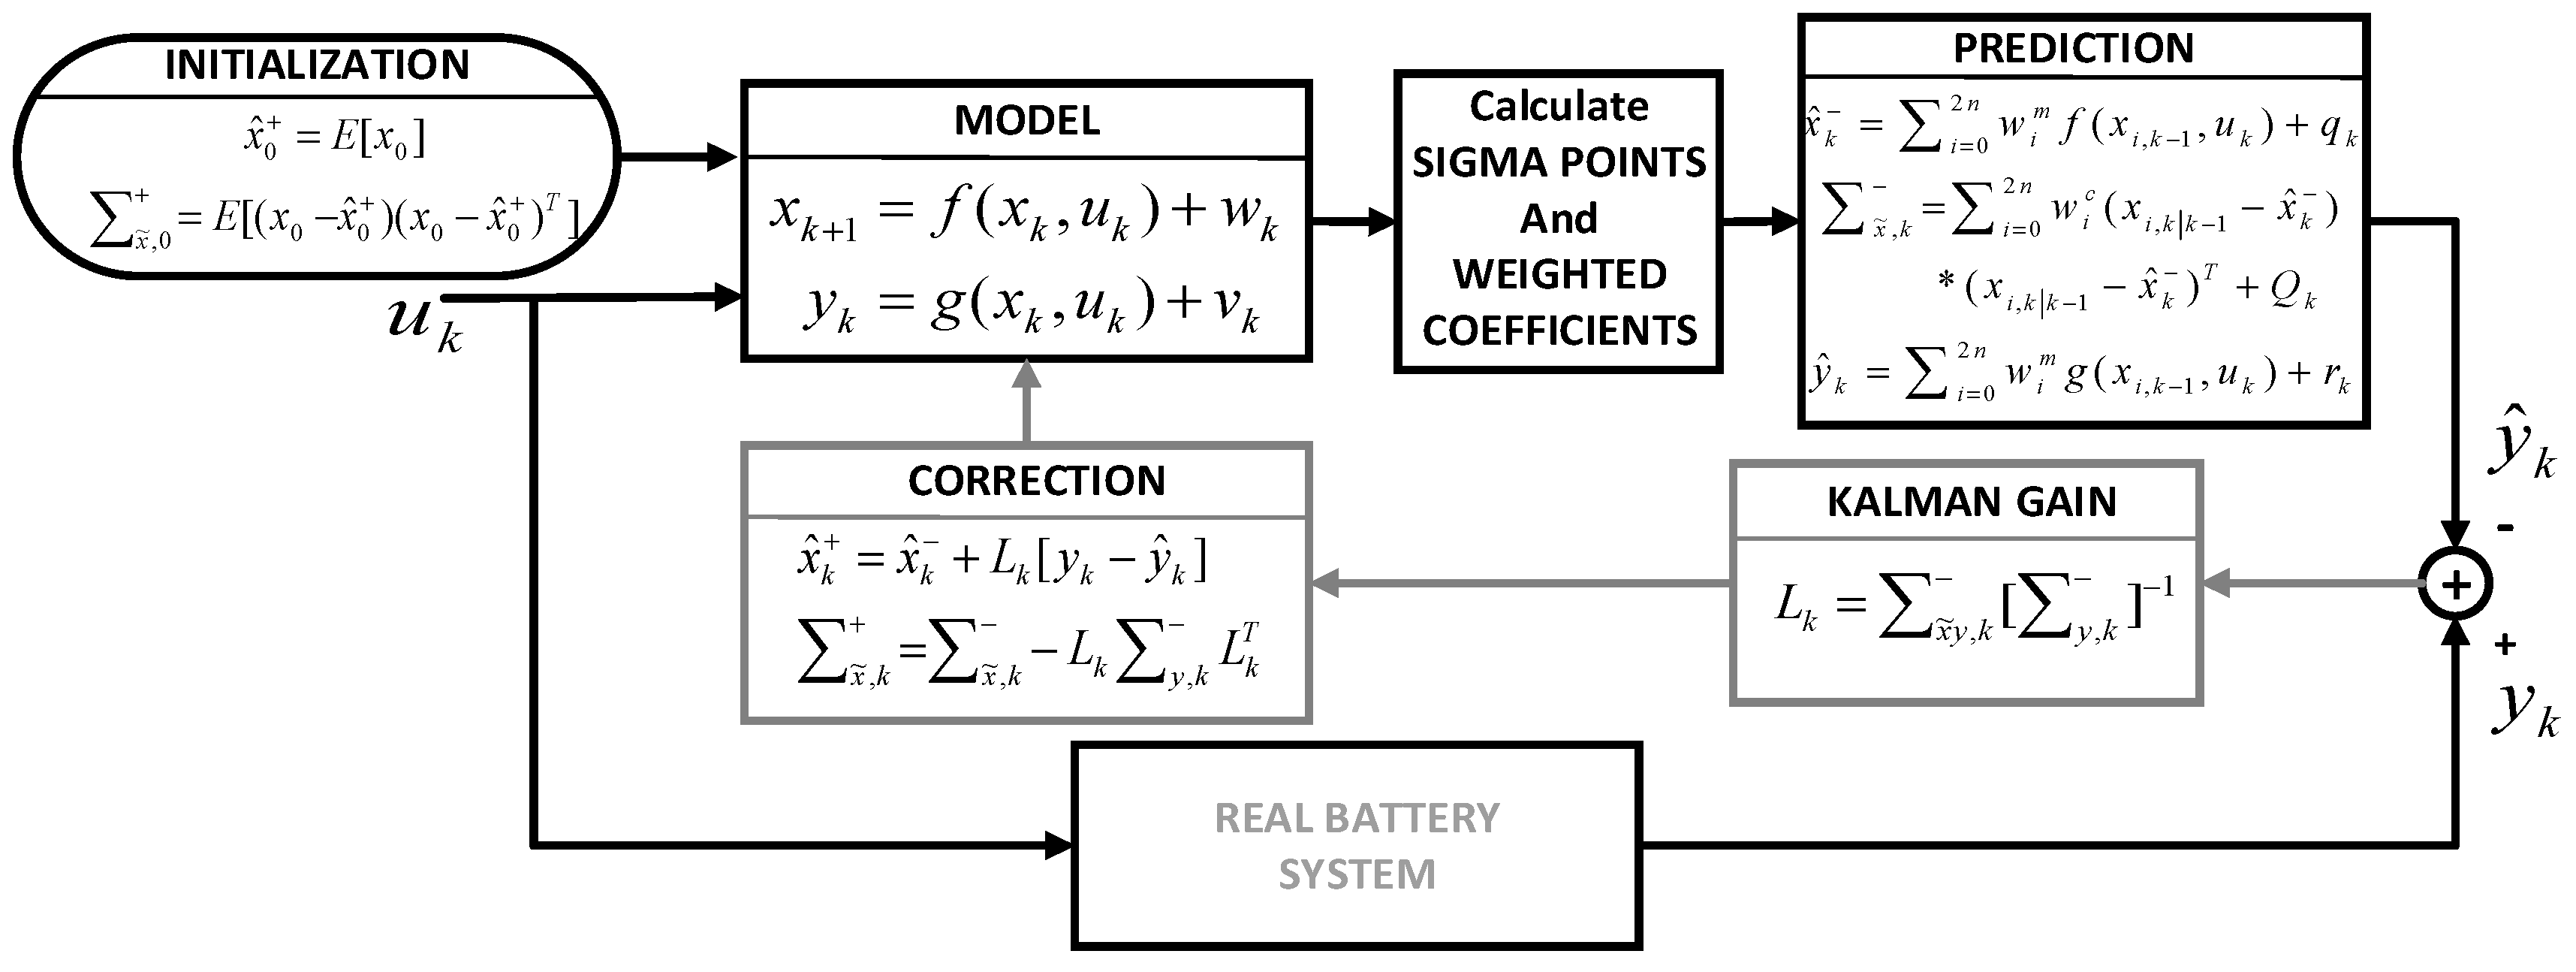 Electronics Free Full Text Soc Estimation For Lithium Ion 350 Qx Battery Wiring Diagram 06 00102 G009